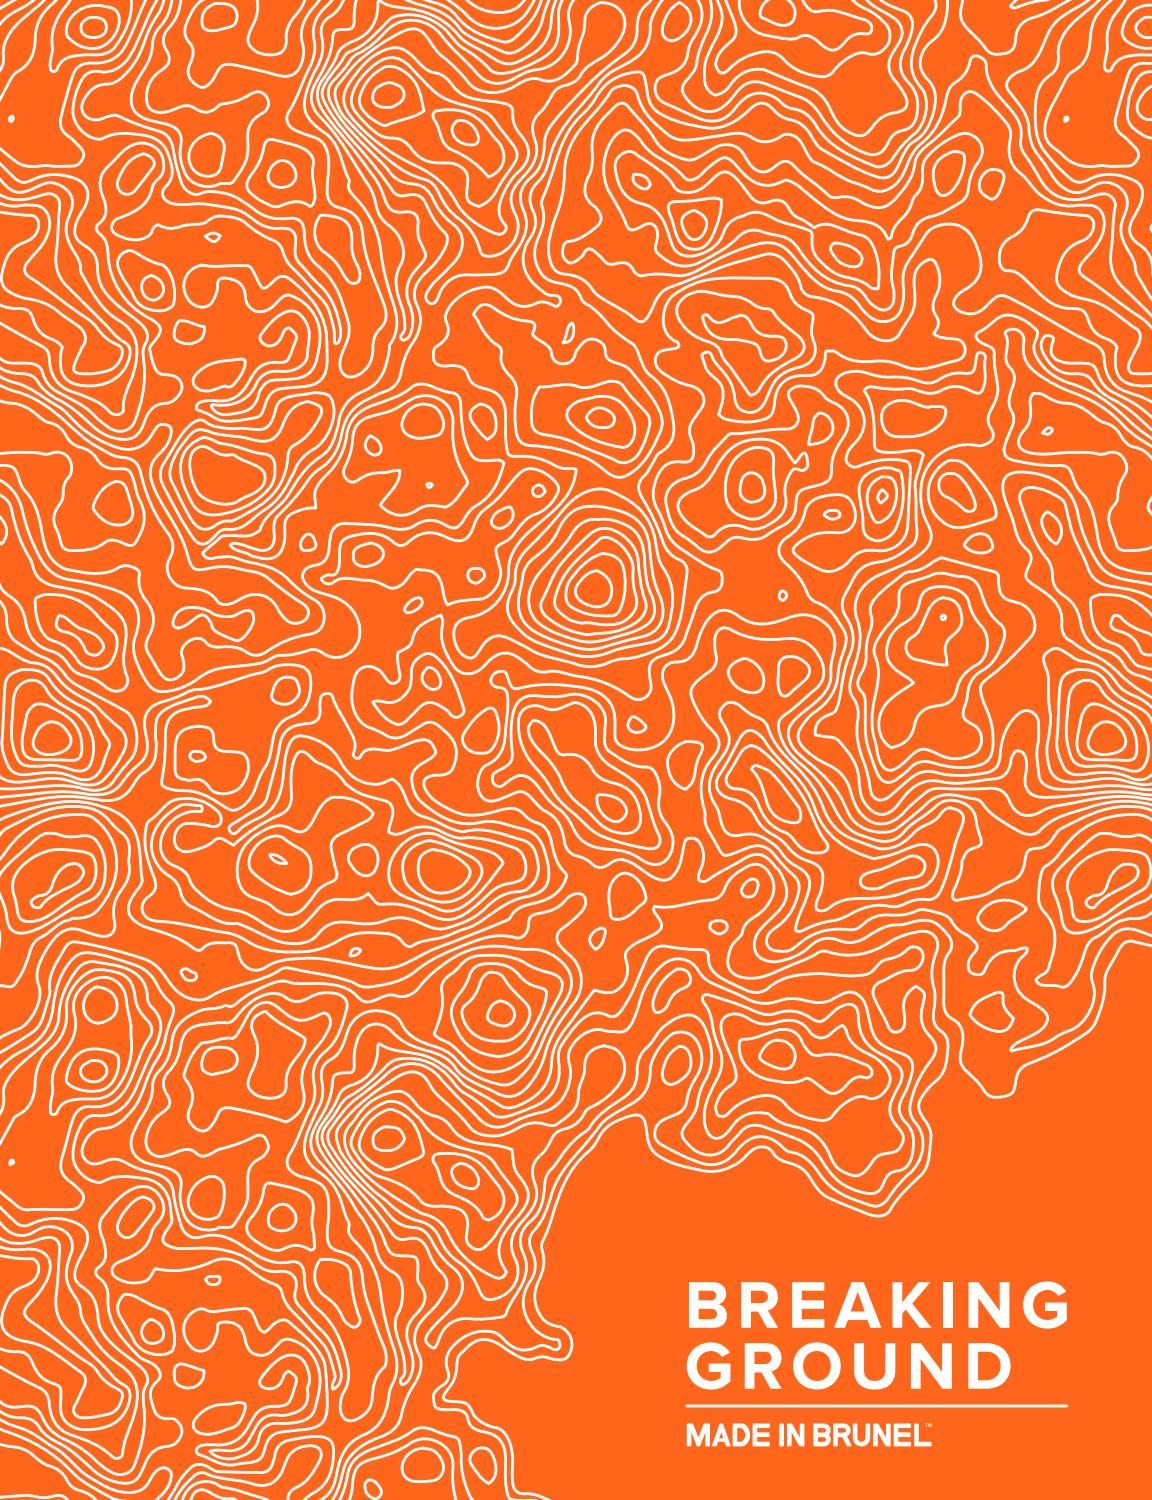 Made In Brunel 16 Breaking Ground By Jon Cooper Issuu Evolvable Hardware Lab 1 The Book Pages